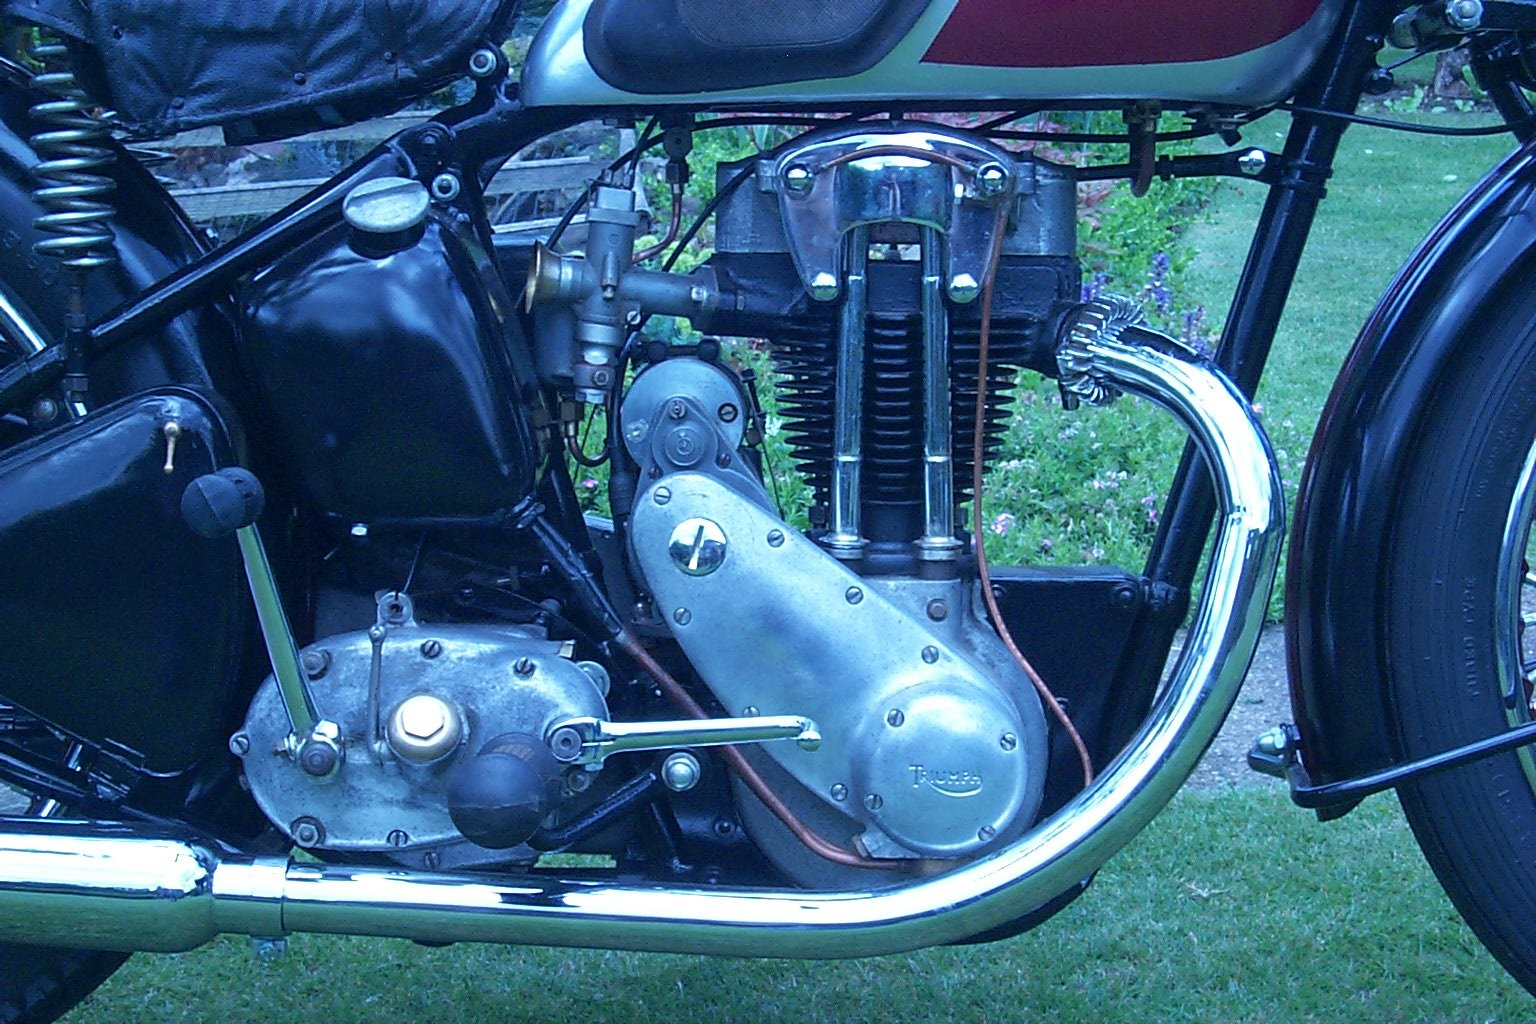 1938 Triumph 2H restored and ready to ride. For Sale (picture 4 of 5)